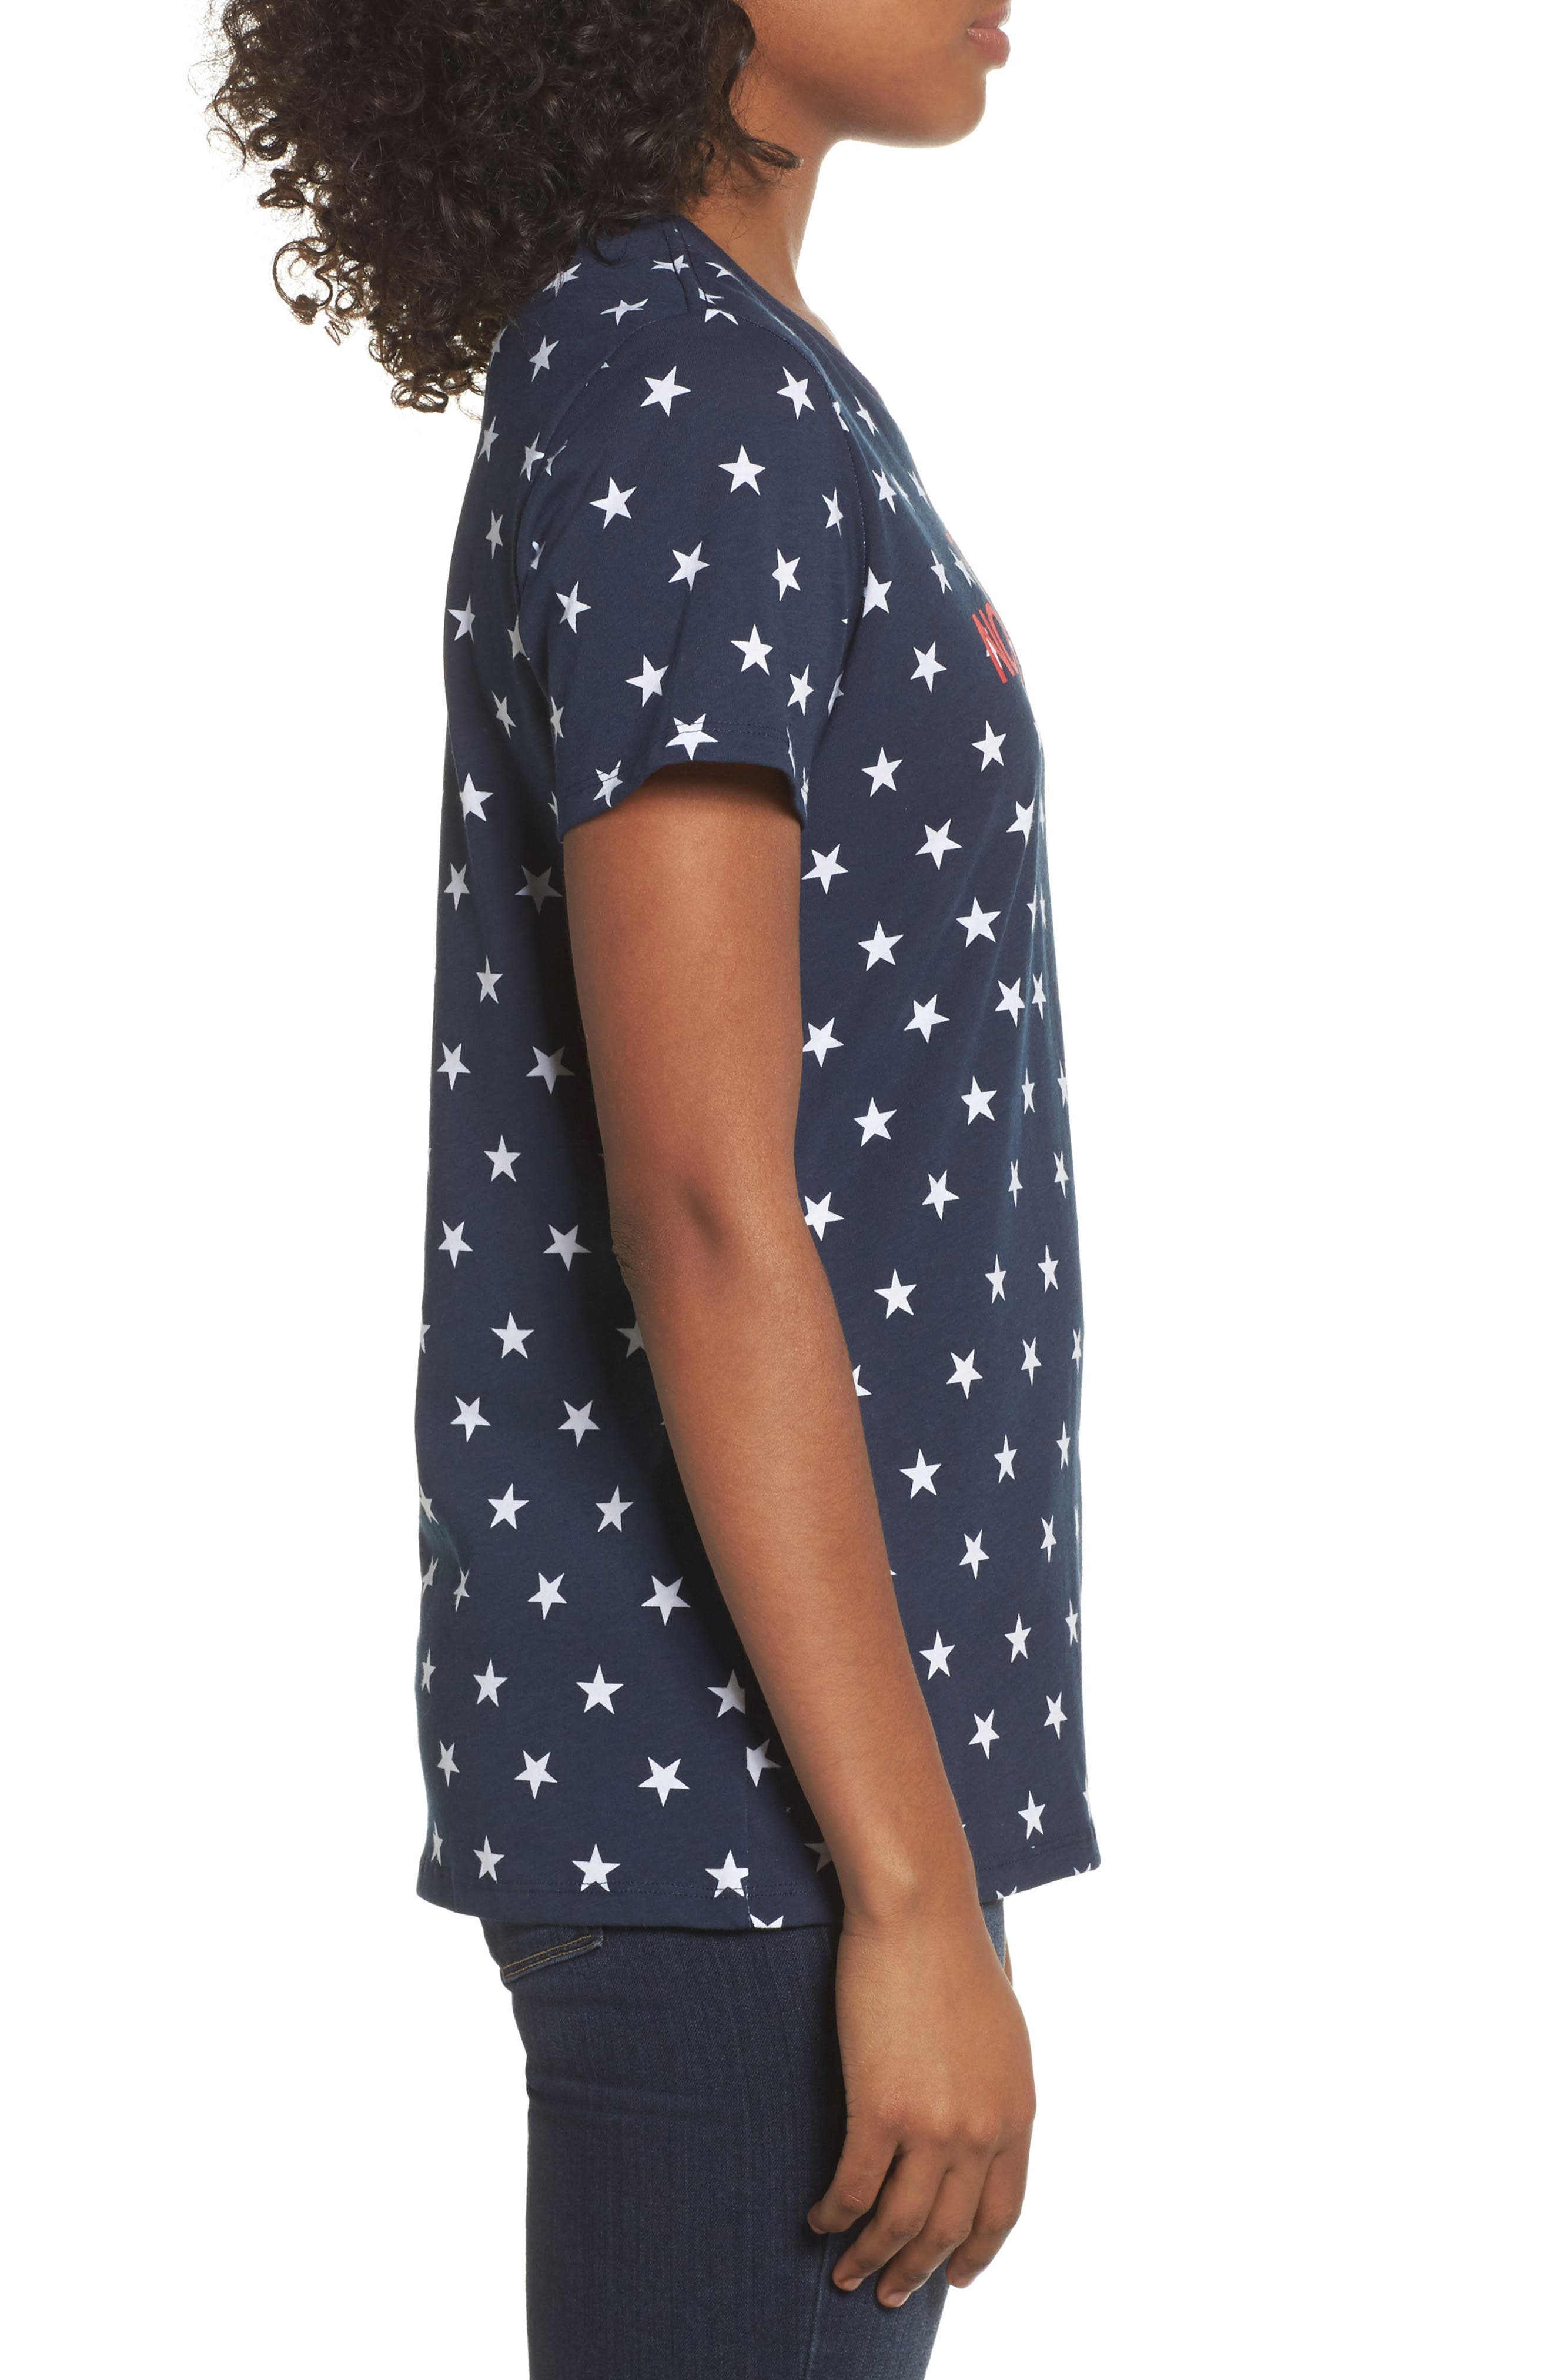 International Collection Tee,                             Alternate thumbnail 3, color,                             COSMIC BLUE STAR PRINT